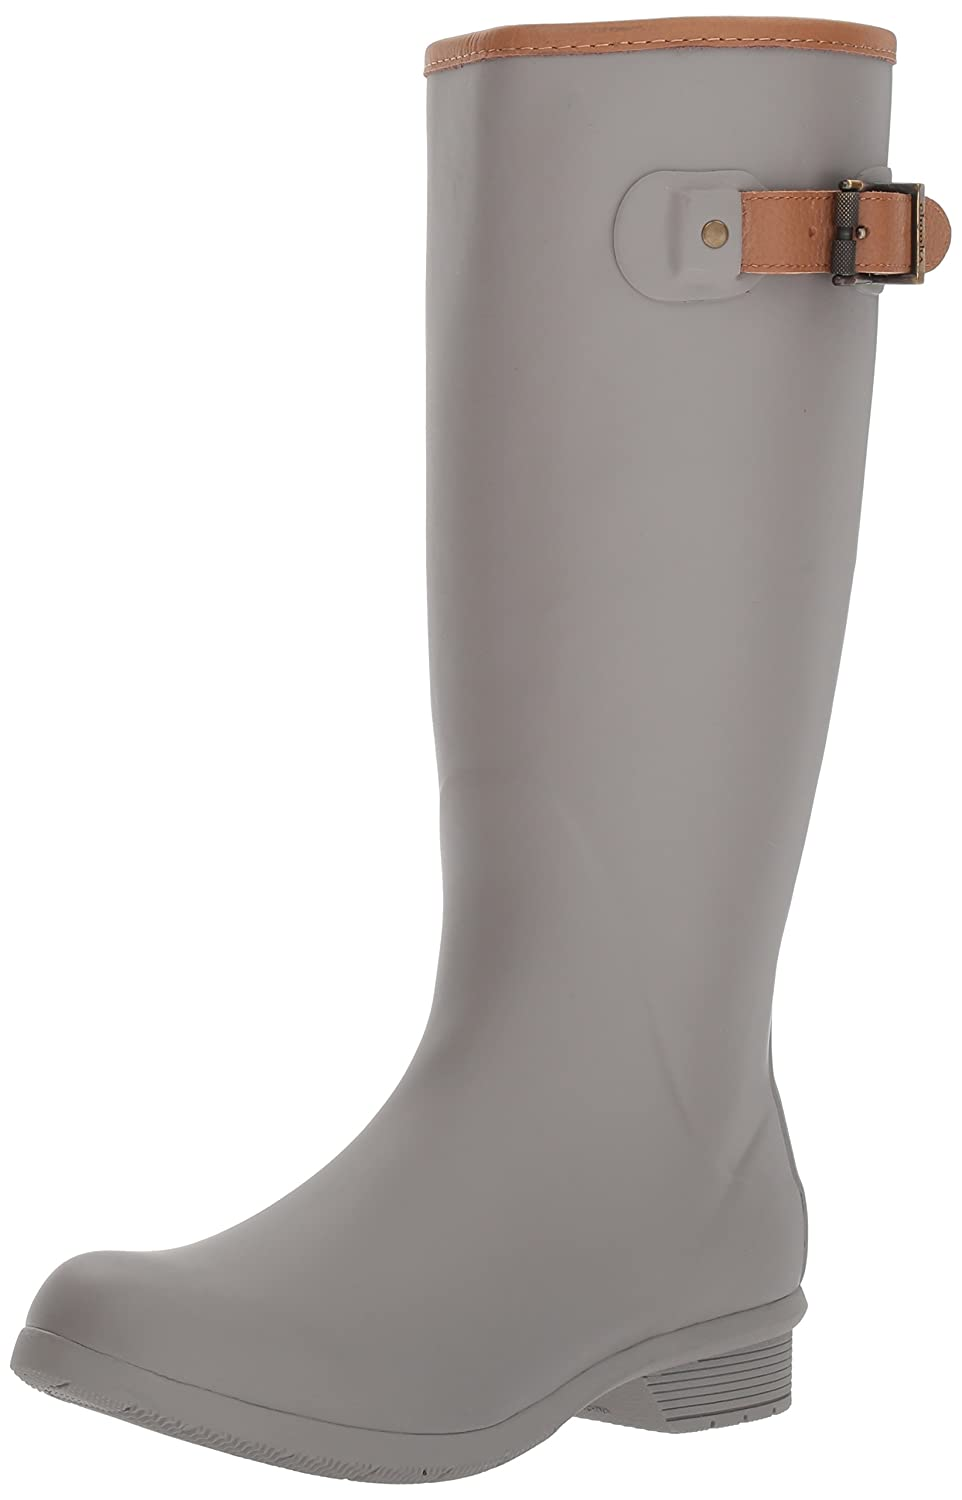 Chooka Women's Tall Memory Foam Rain Boot B01N6FU7OG 9 B(M) US|Stone